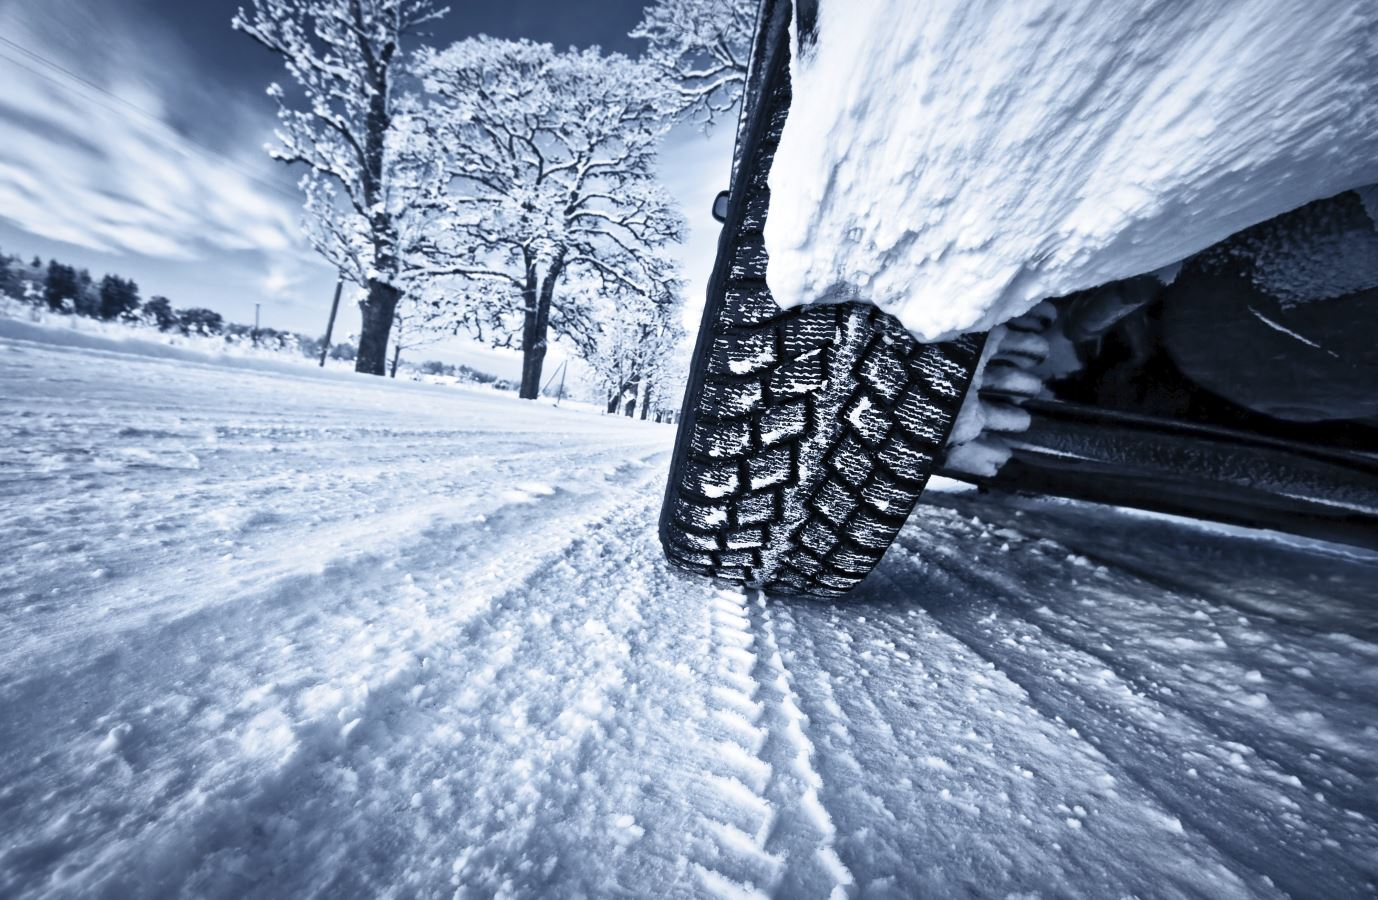 Lexus of Seattle - Tips for Driving on Snow and Ice